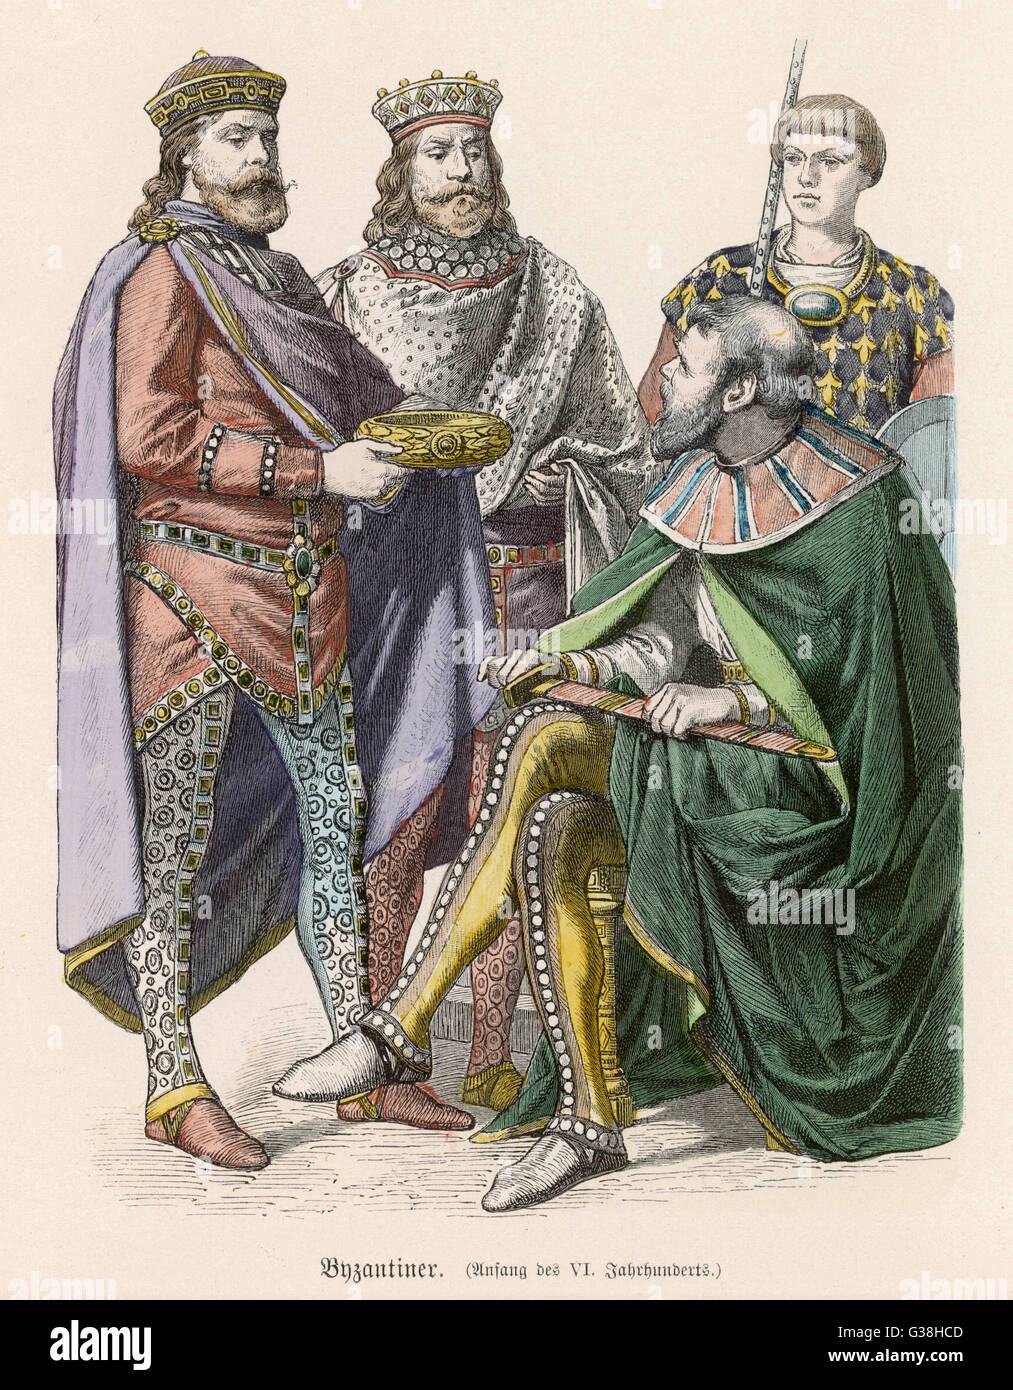 Men of the Byzantine period         Date: 6th century - Stock Image